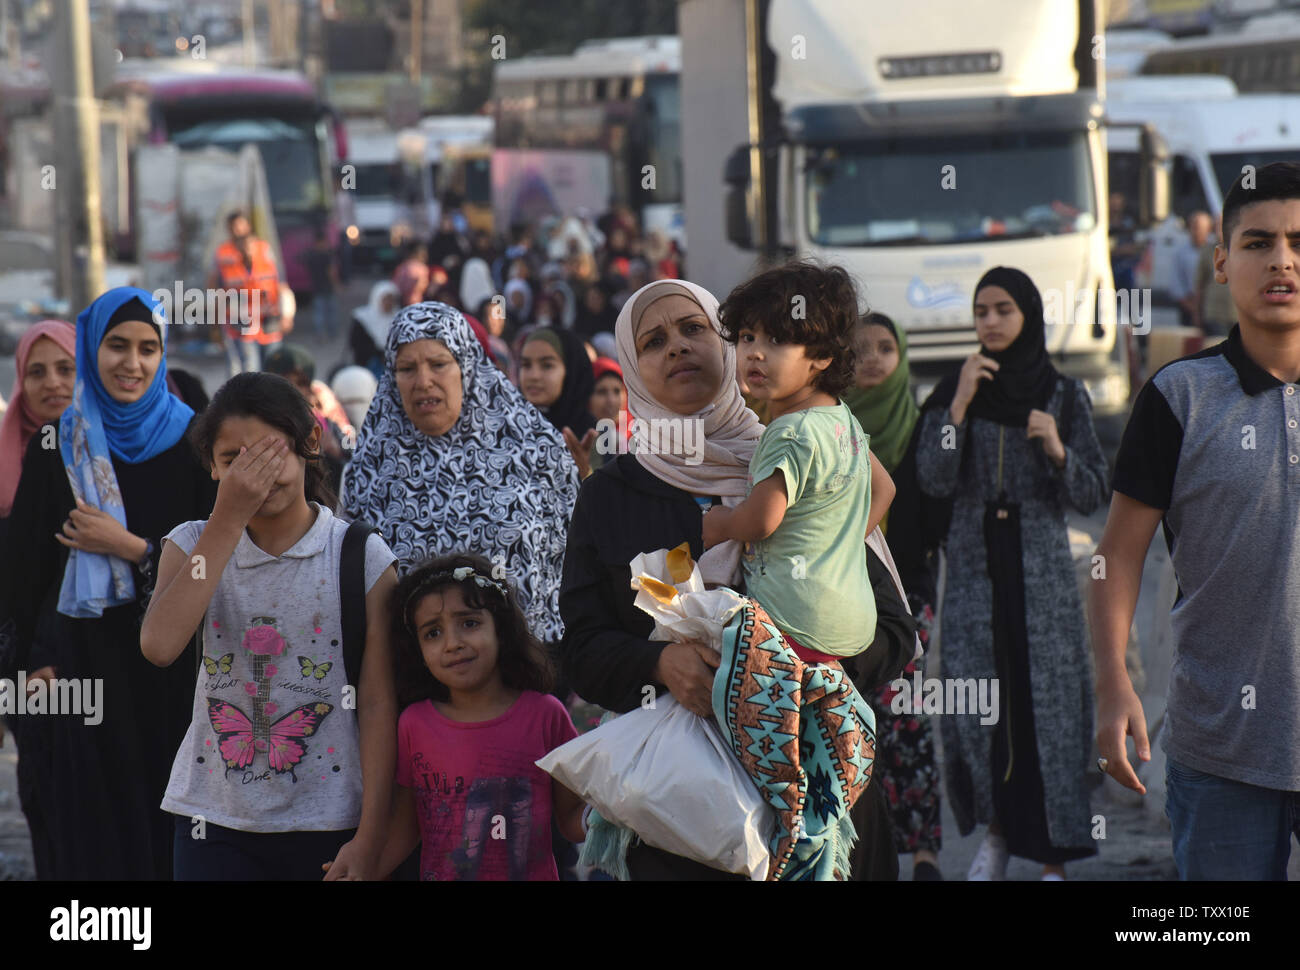 Palestinians walk to the Qalandiya checkpoint, West Bank, from Ramallah to Jerusalem, to pray at the Al-Aqsa Mosque on the last Friday of the Muslim holy month of Ramadan, June 8, 2018.  Photo by Debbie Hill/UPI - Stock Image